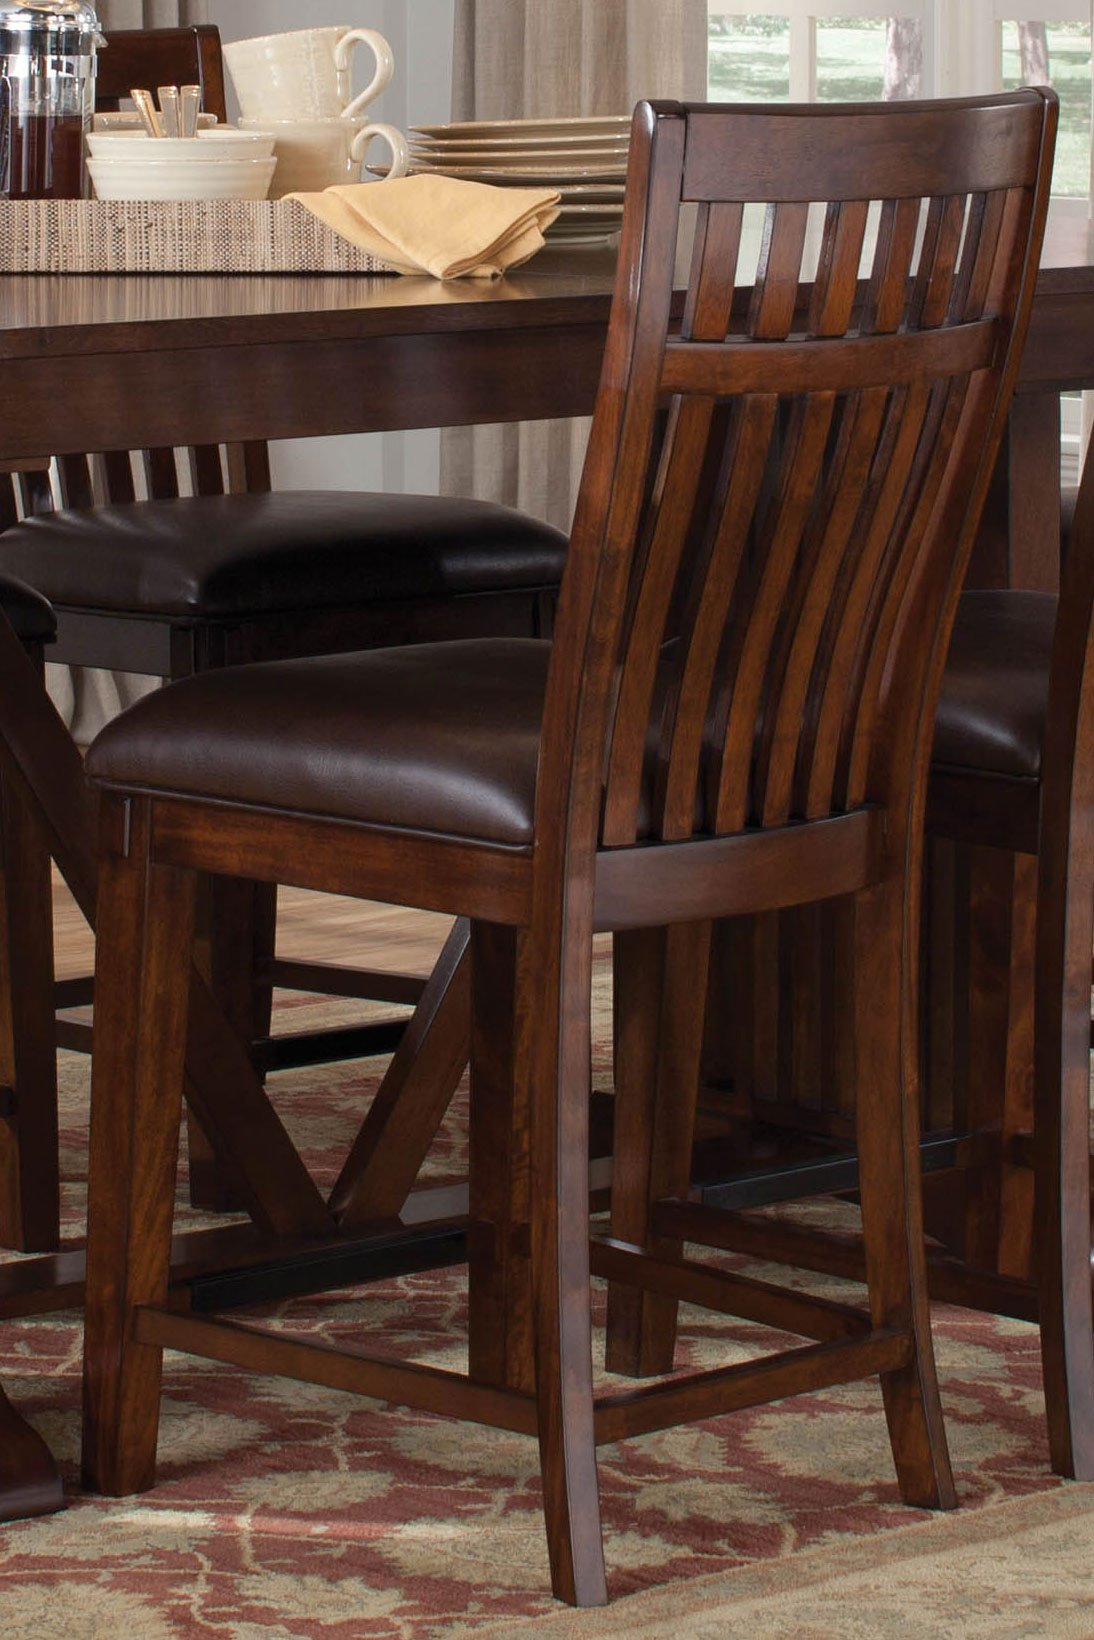 Artisan home 5 piece counter height dining set rc willey furniture store Artisan home furniture bar stools